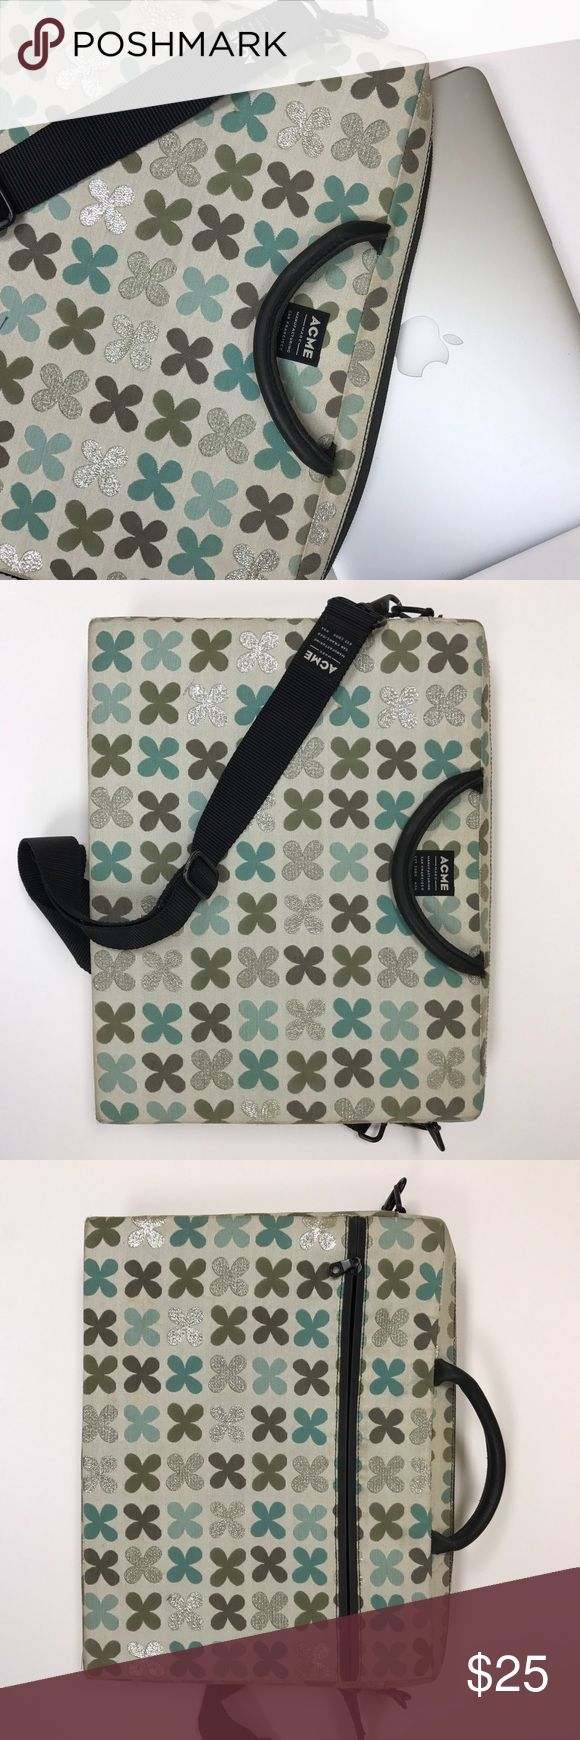 "Acme Made Designer 15"" Laptop Case w/ Strap Designer Laptop Case with bold printed fabric. Interior cushioned with top zipper enclosure. Carry by handles or with adjustable, comfortable shoulder / Cross-body Strap. Exterior Zipper. Fits 15"" Laptop. Measures 15"" w x 11.5"" h x 2"" d Acme Made Bags Laptop Bags"